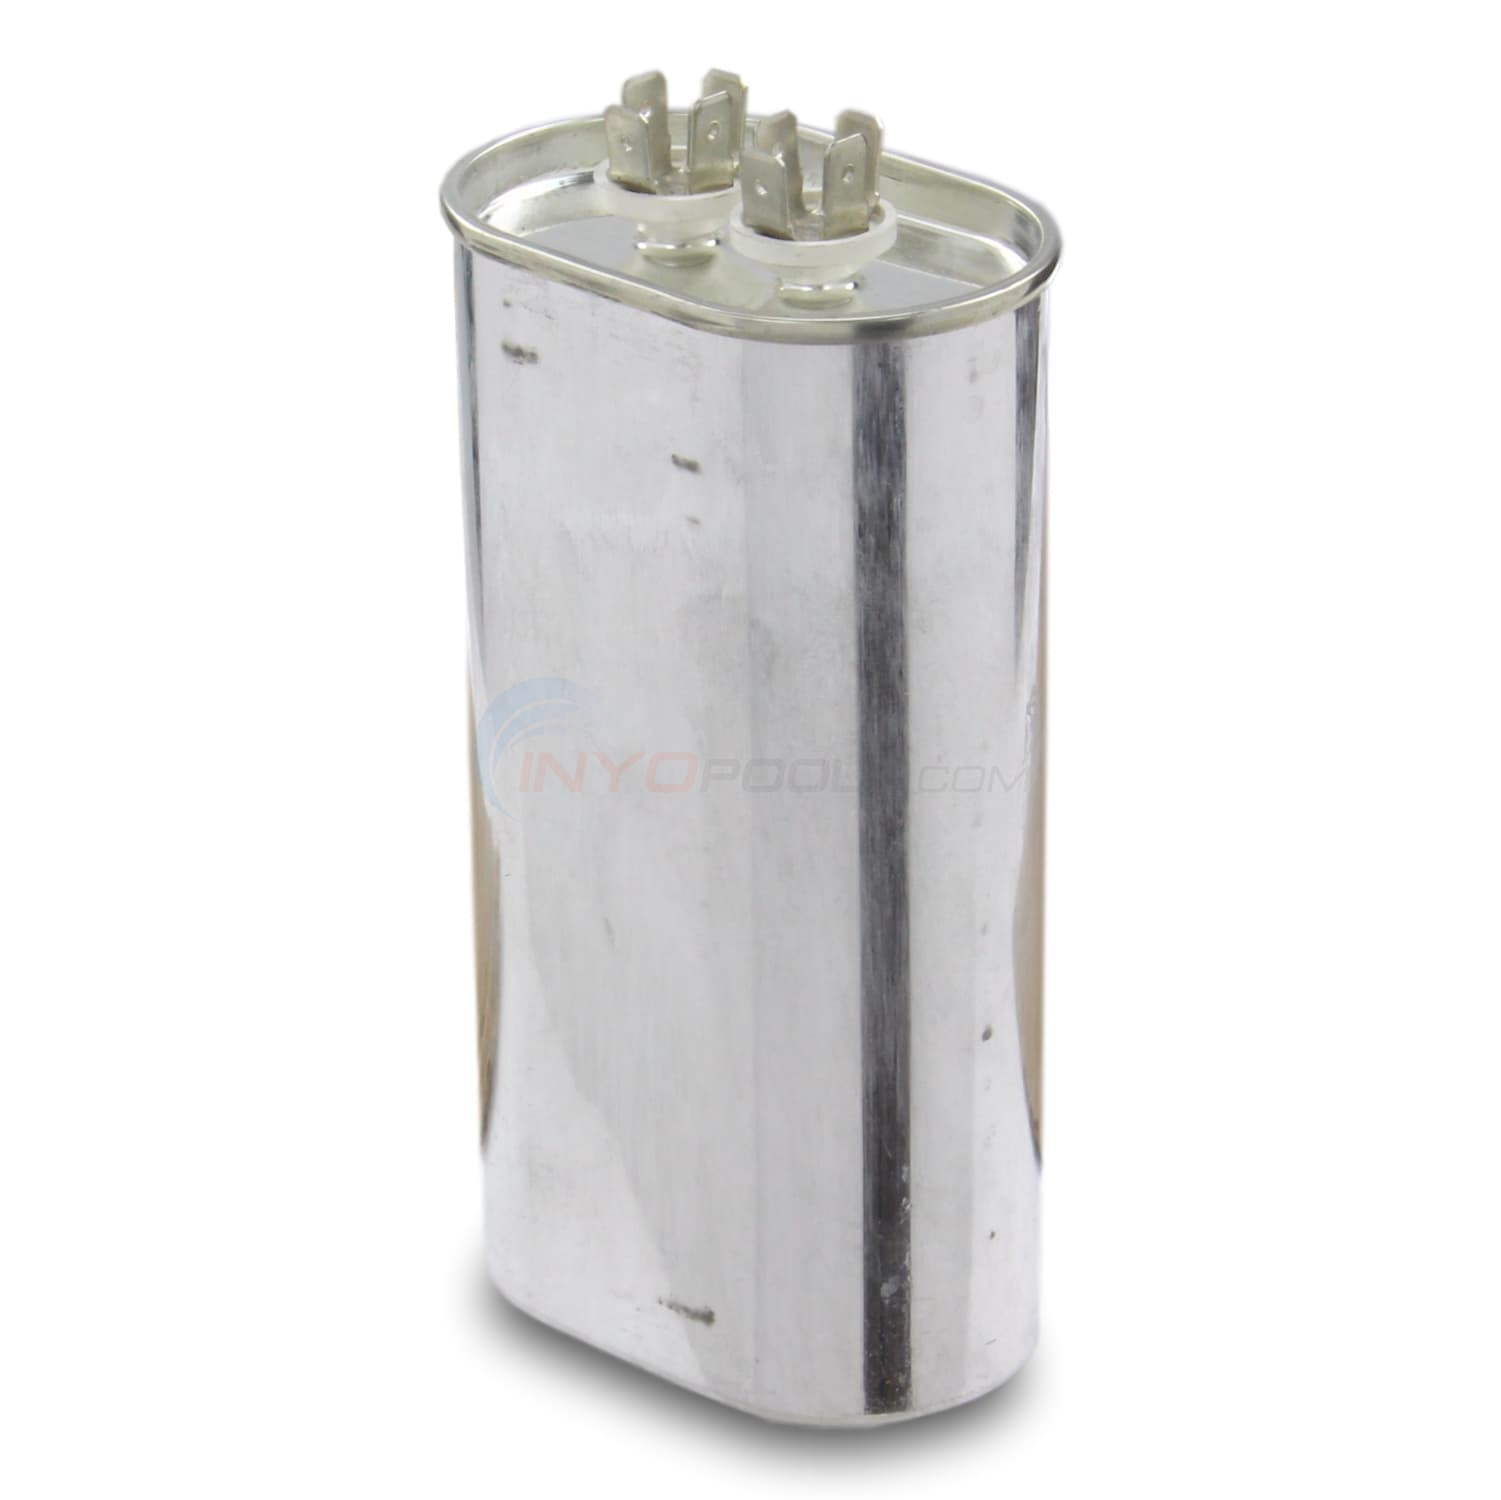 Capacitor, Compressor, 60/370 (I PH only)- 1500